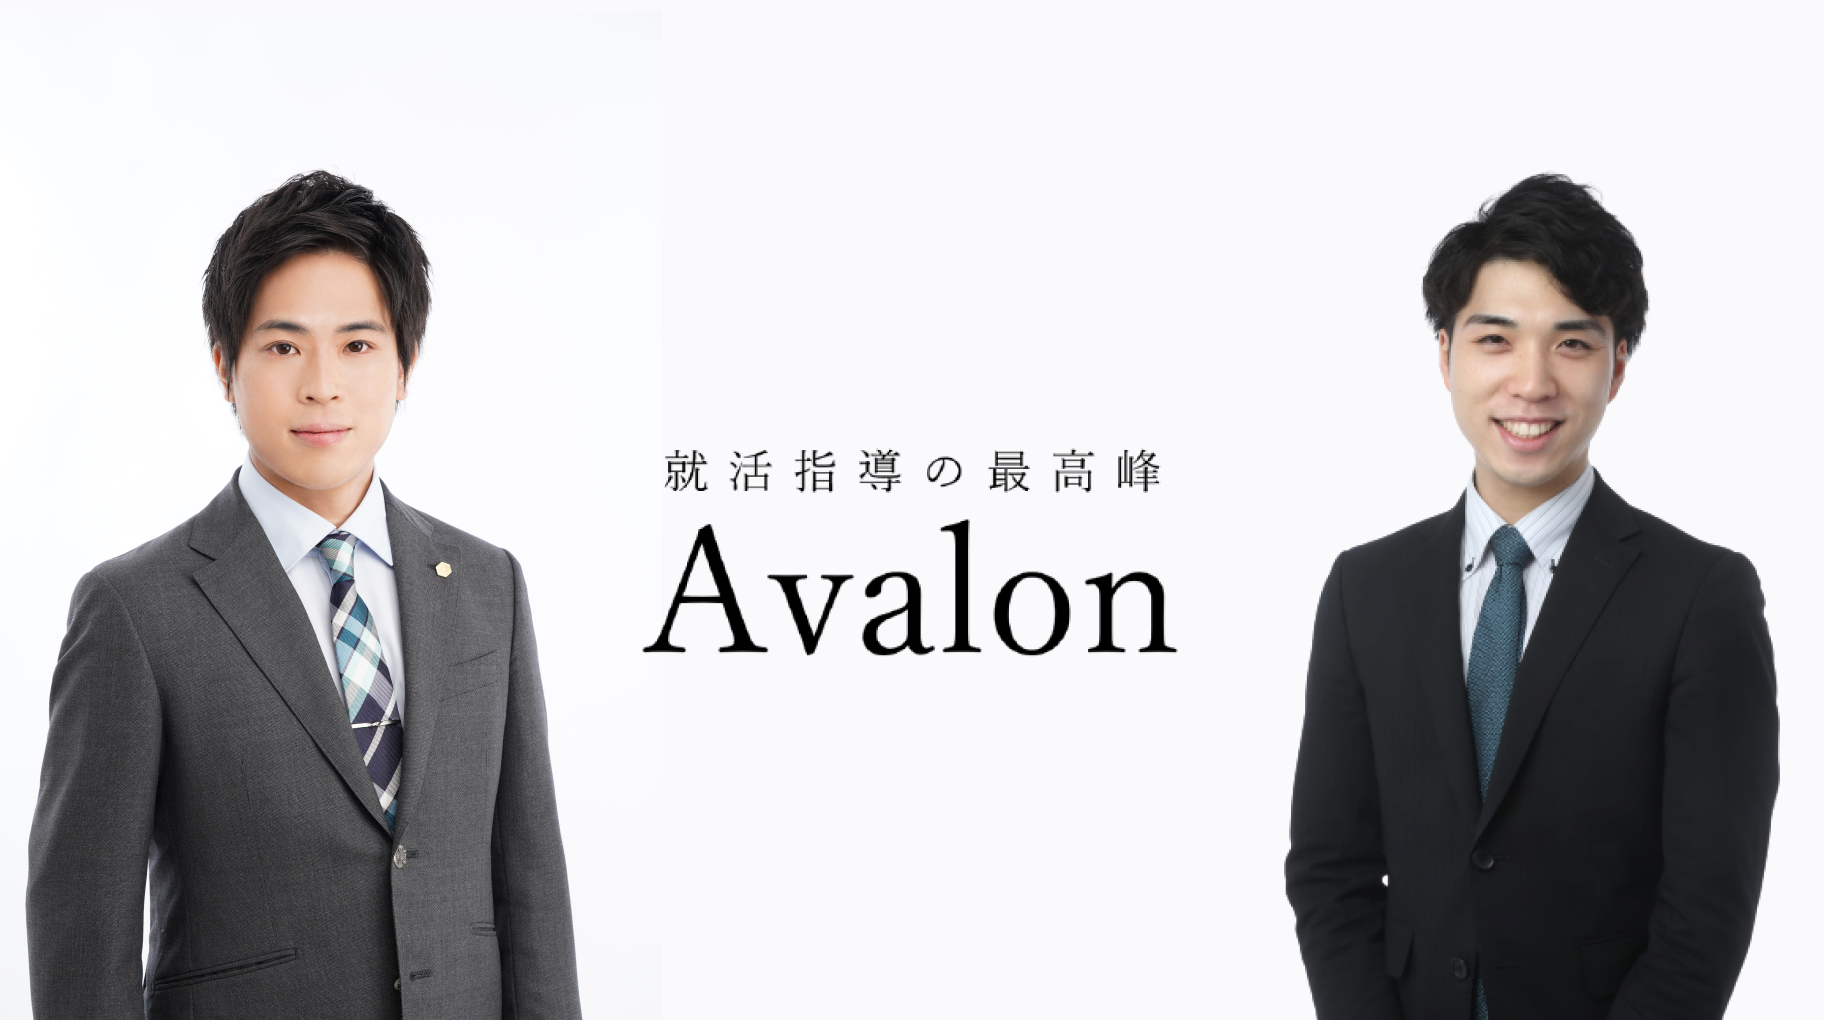 Avalon Consulting株式会社